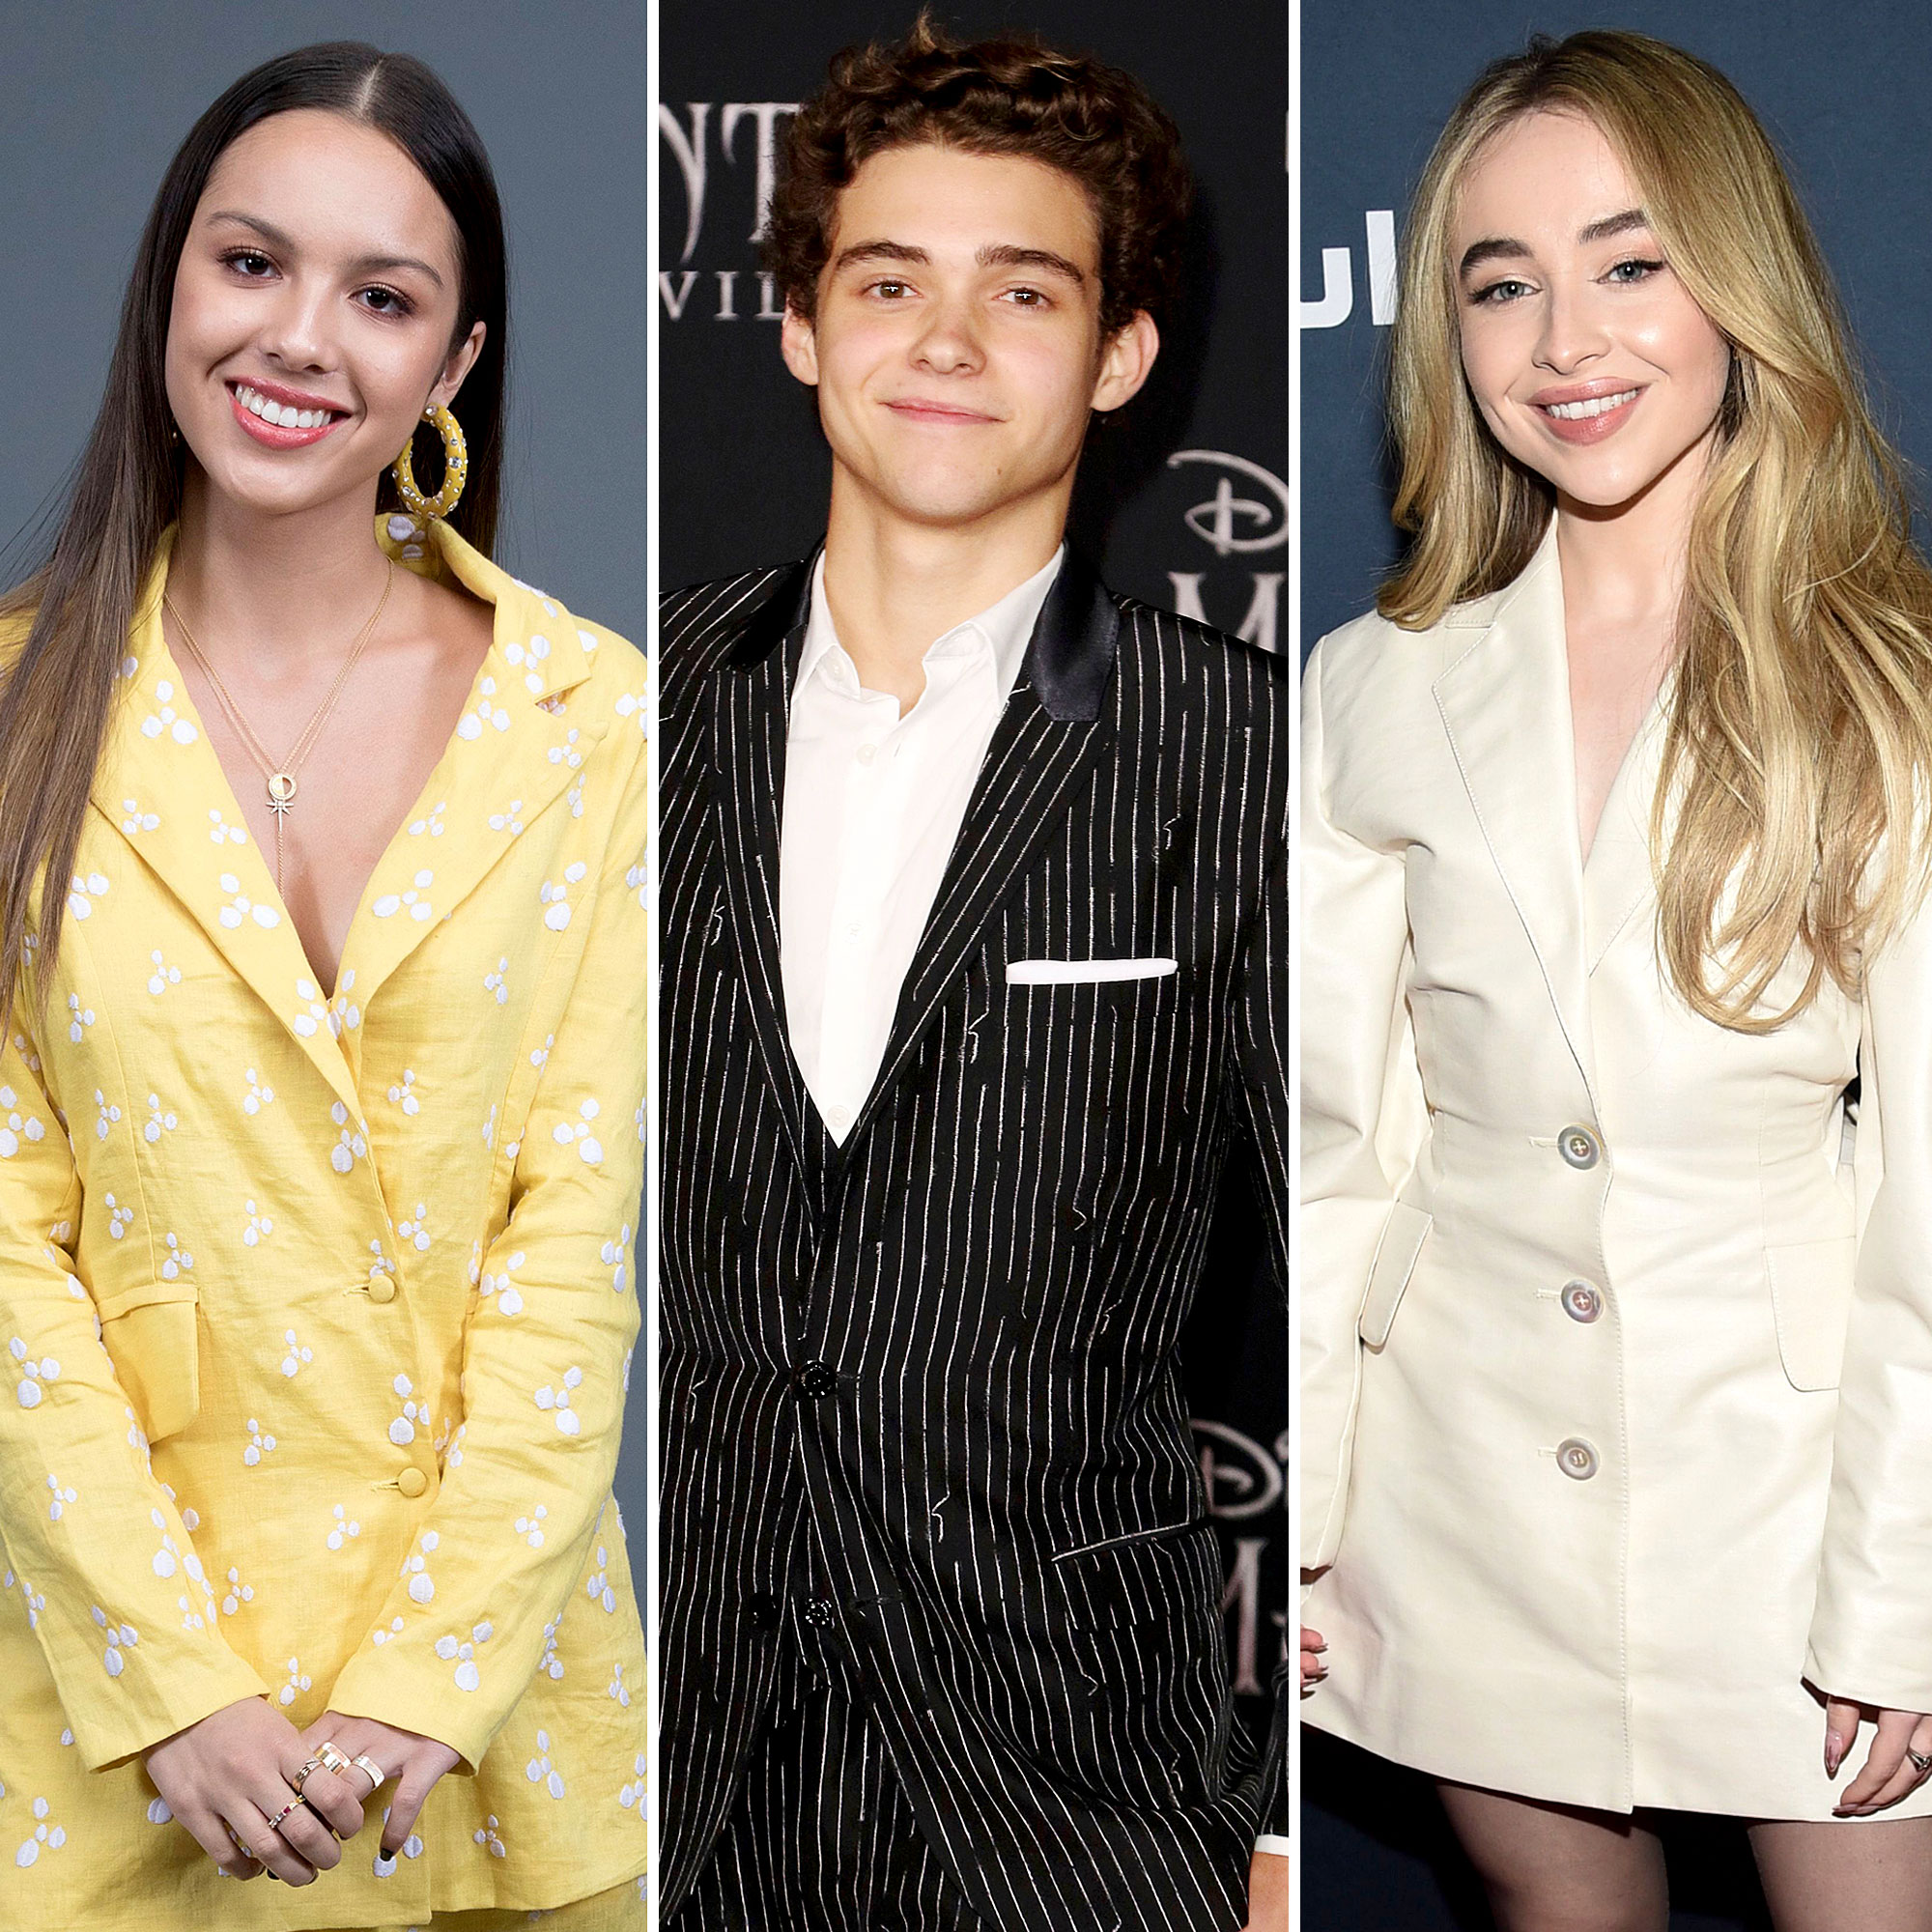 Breaking Down Olivia Rodrigo, Joshua Bassett and Sabrina Carpenter's Triangle